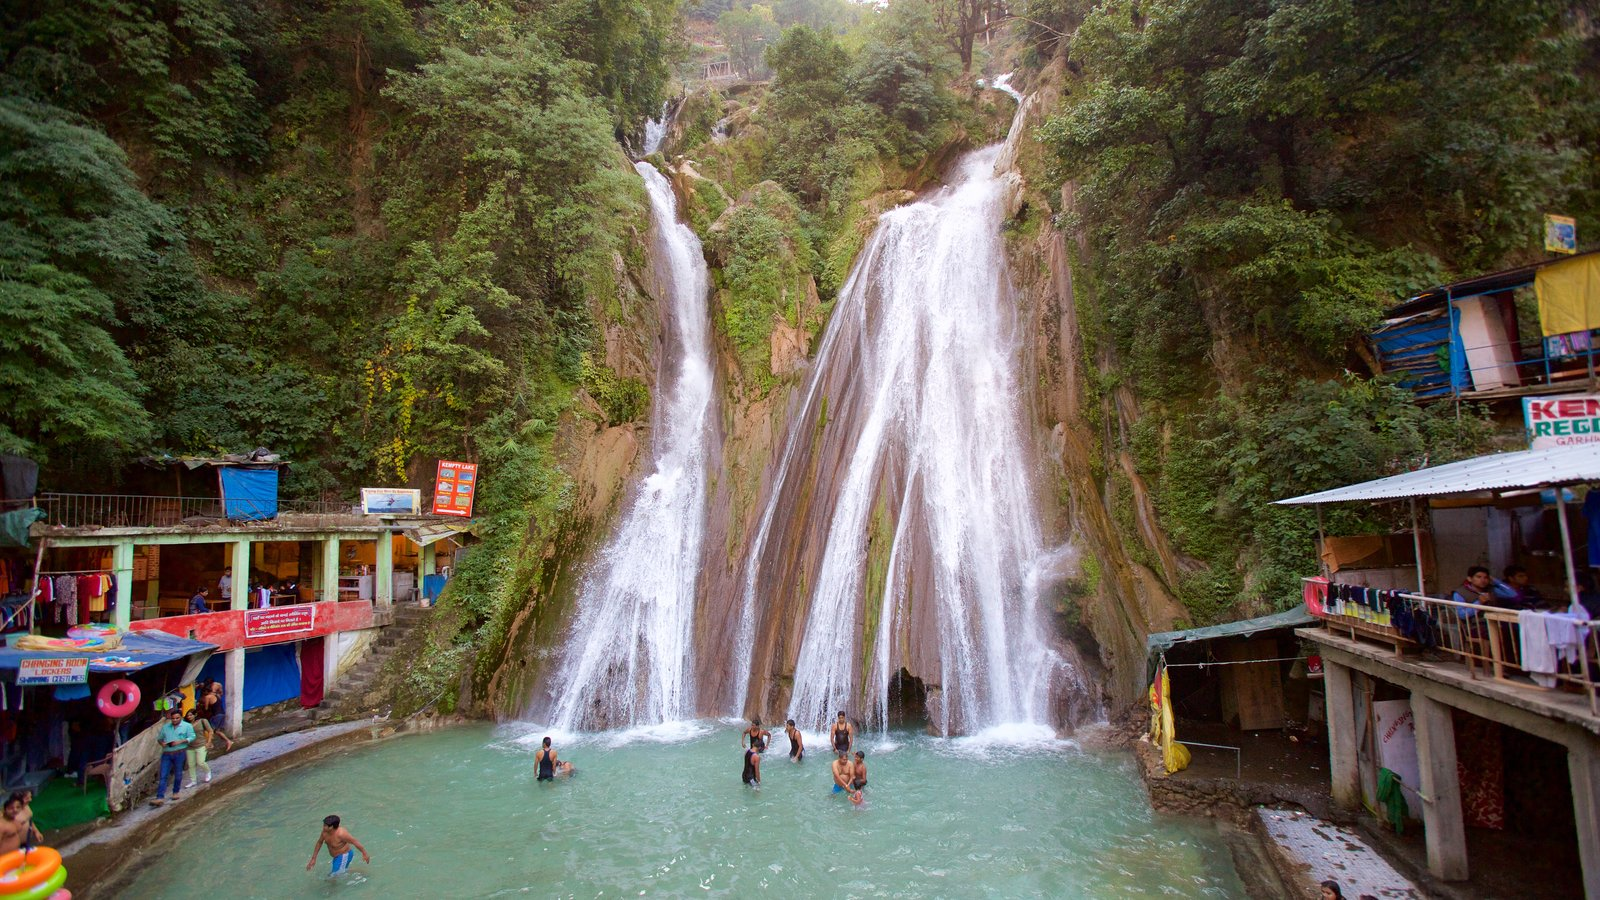 Dehradun which includes swimming, a waterfall and rainforest